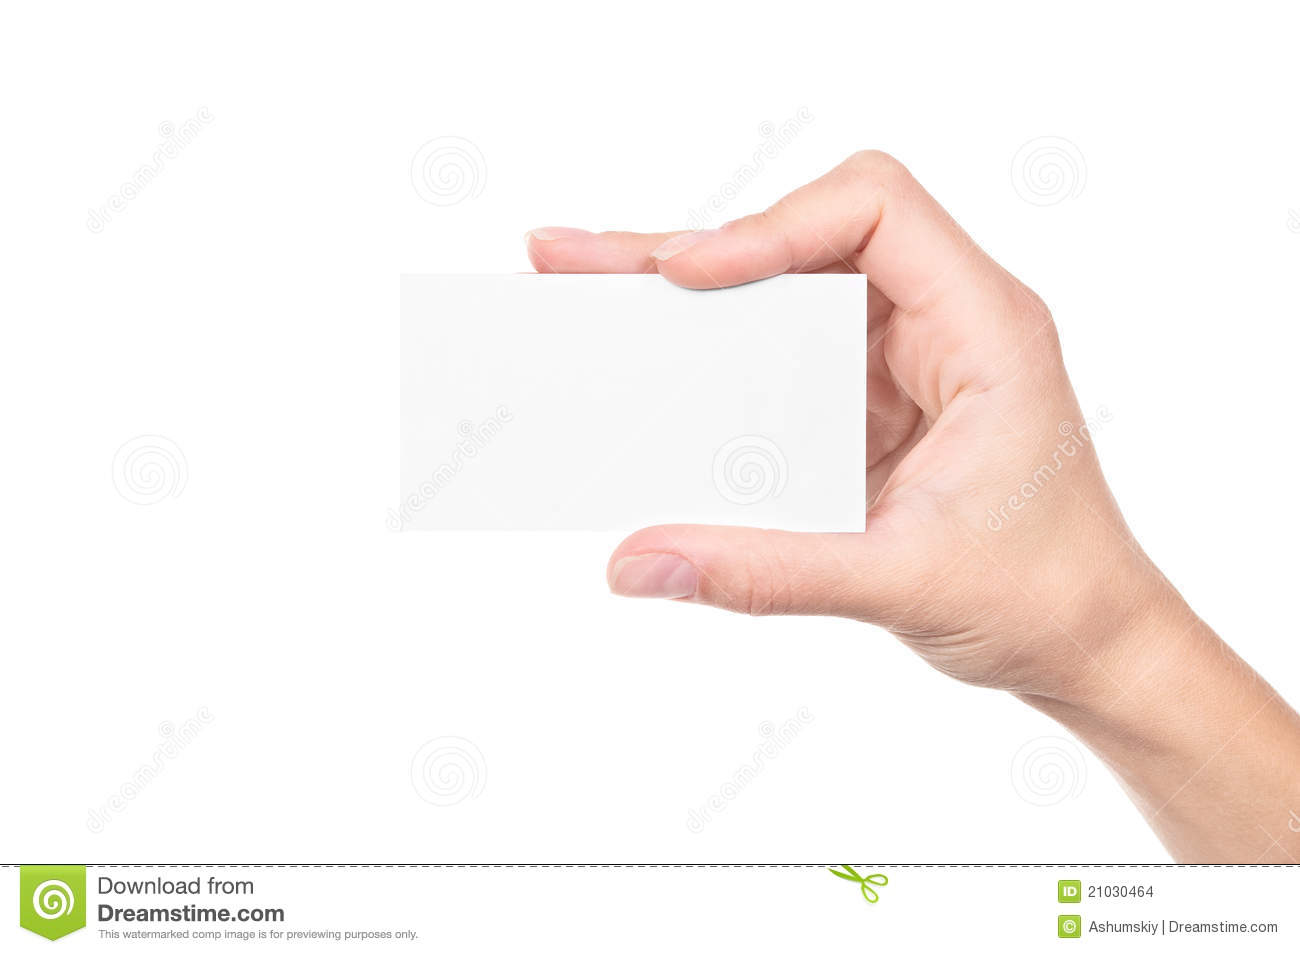 Hand Holding An Empty Business Card Stock Images - Image: 21030464